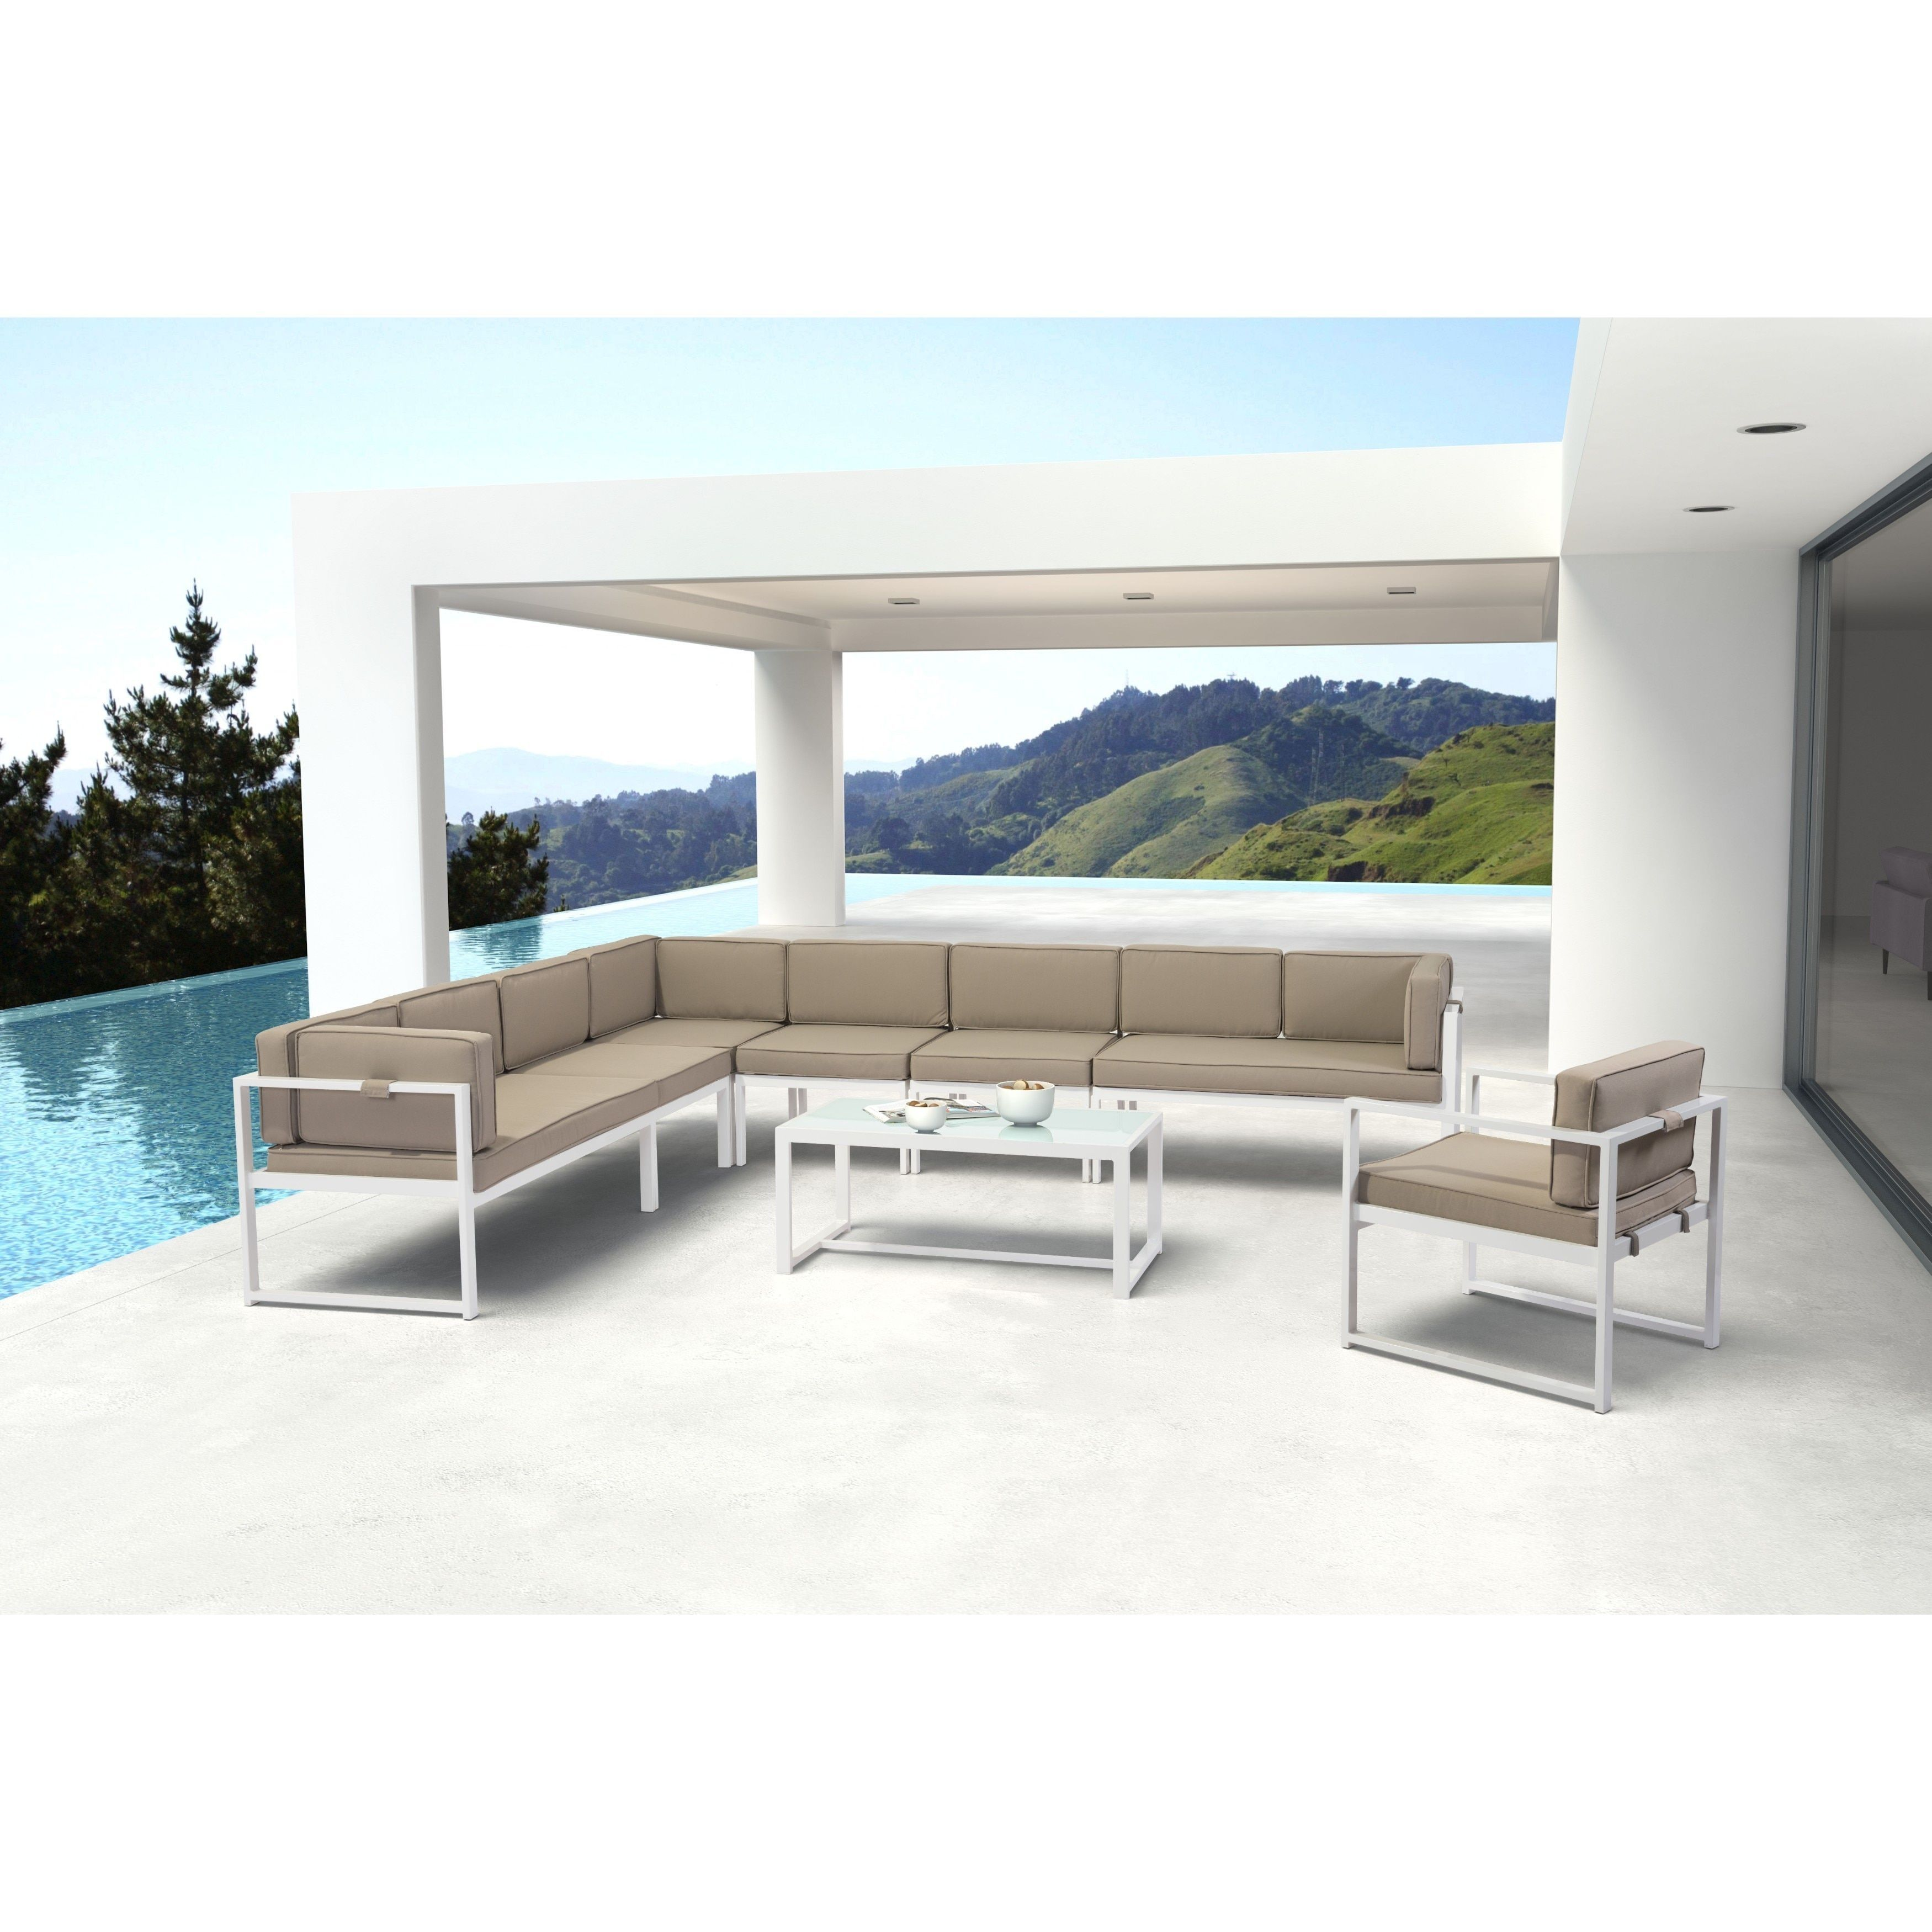 Best Online Furniture Stores Affordable: Zuo Golden Beach White Coffee Table (Golden Beach Coffee